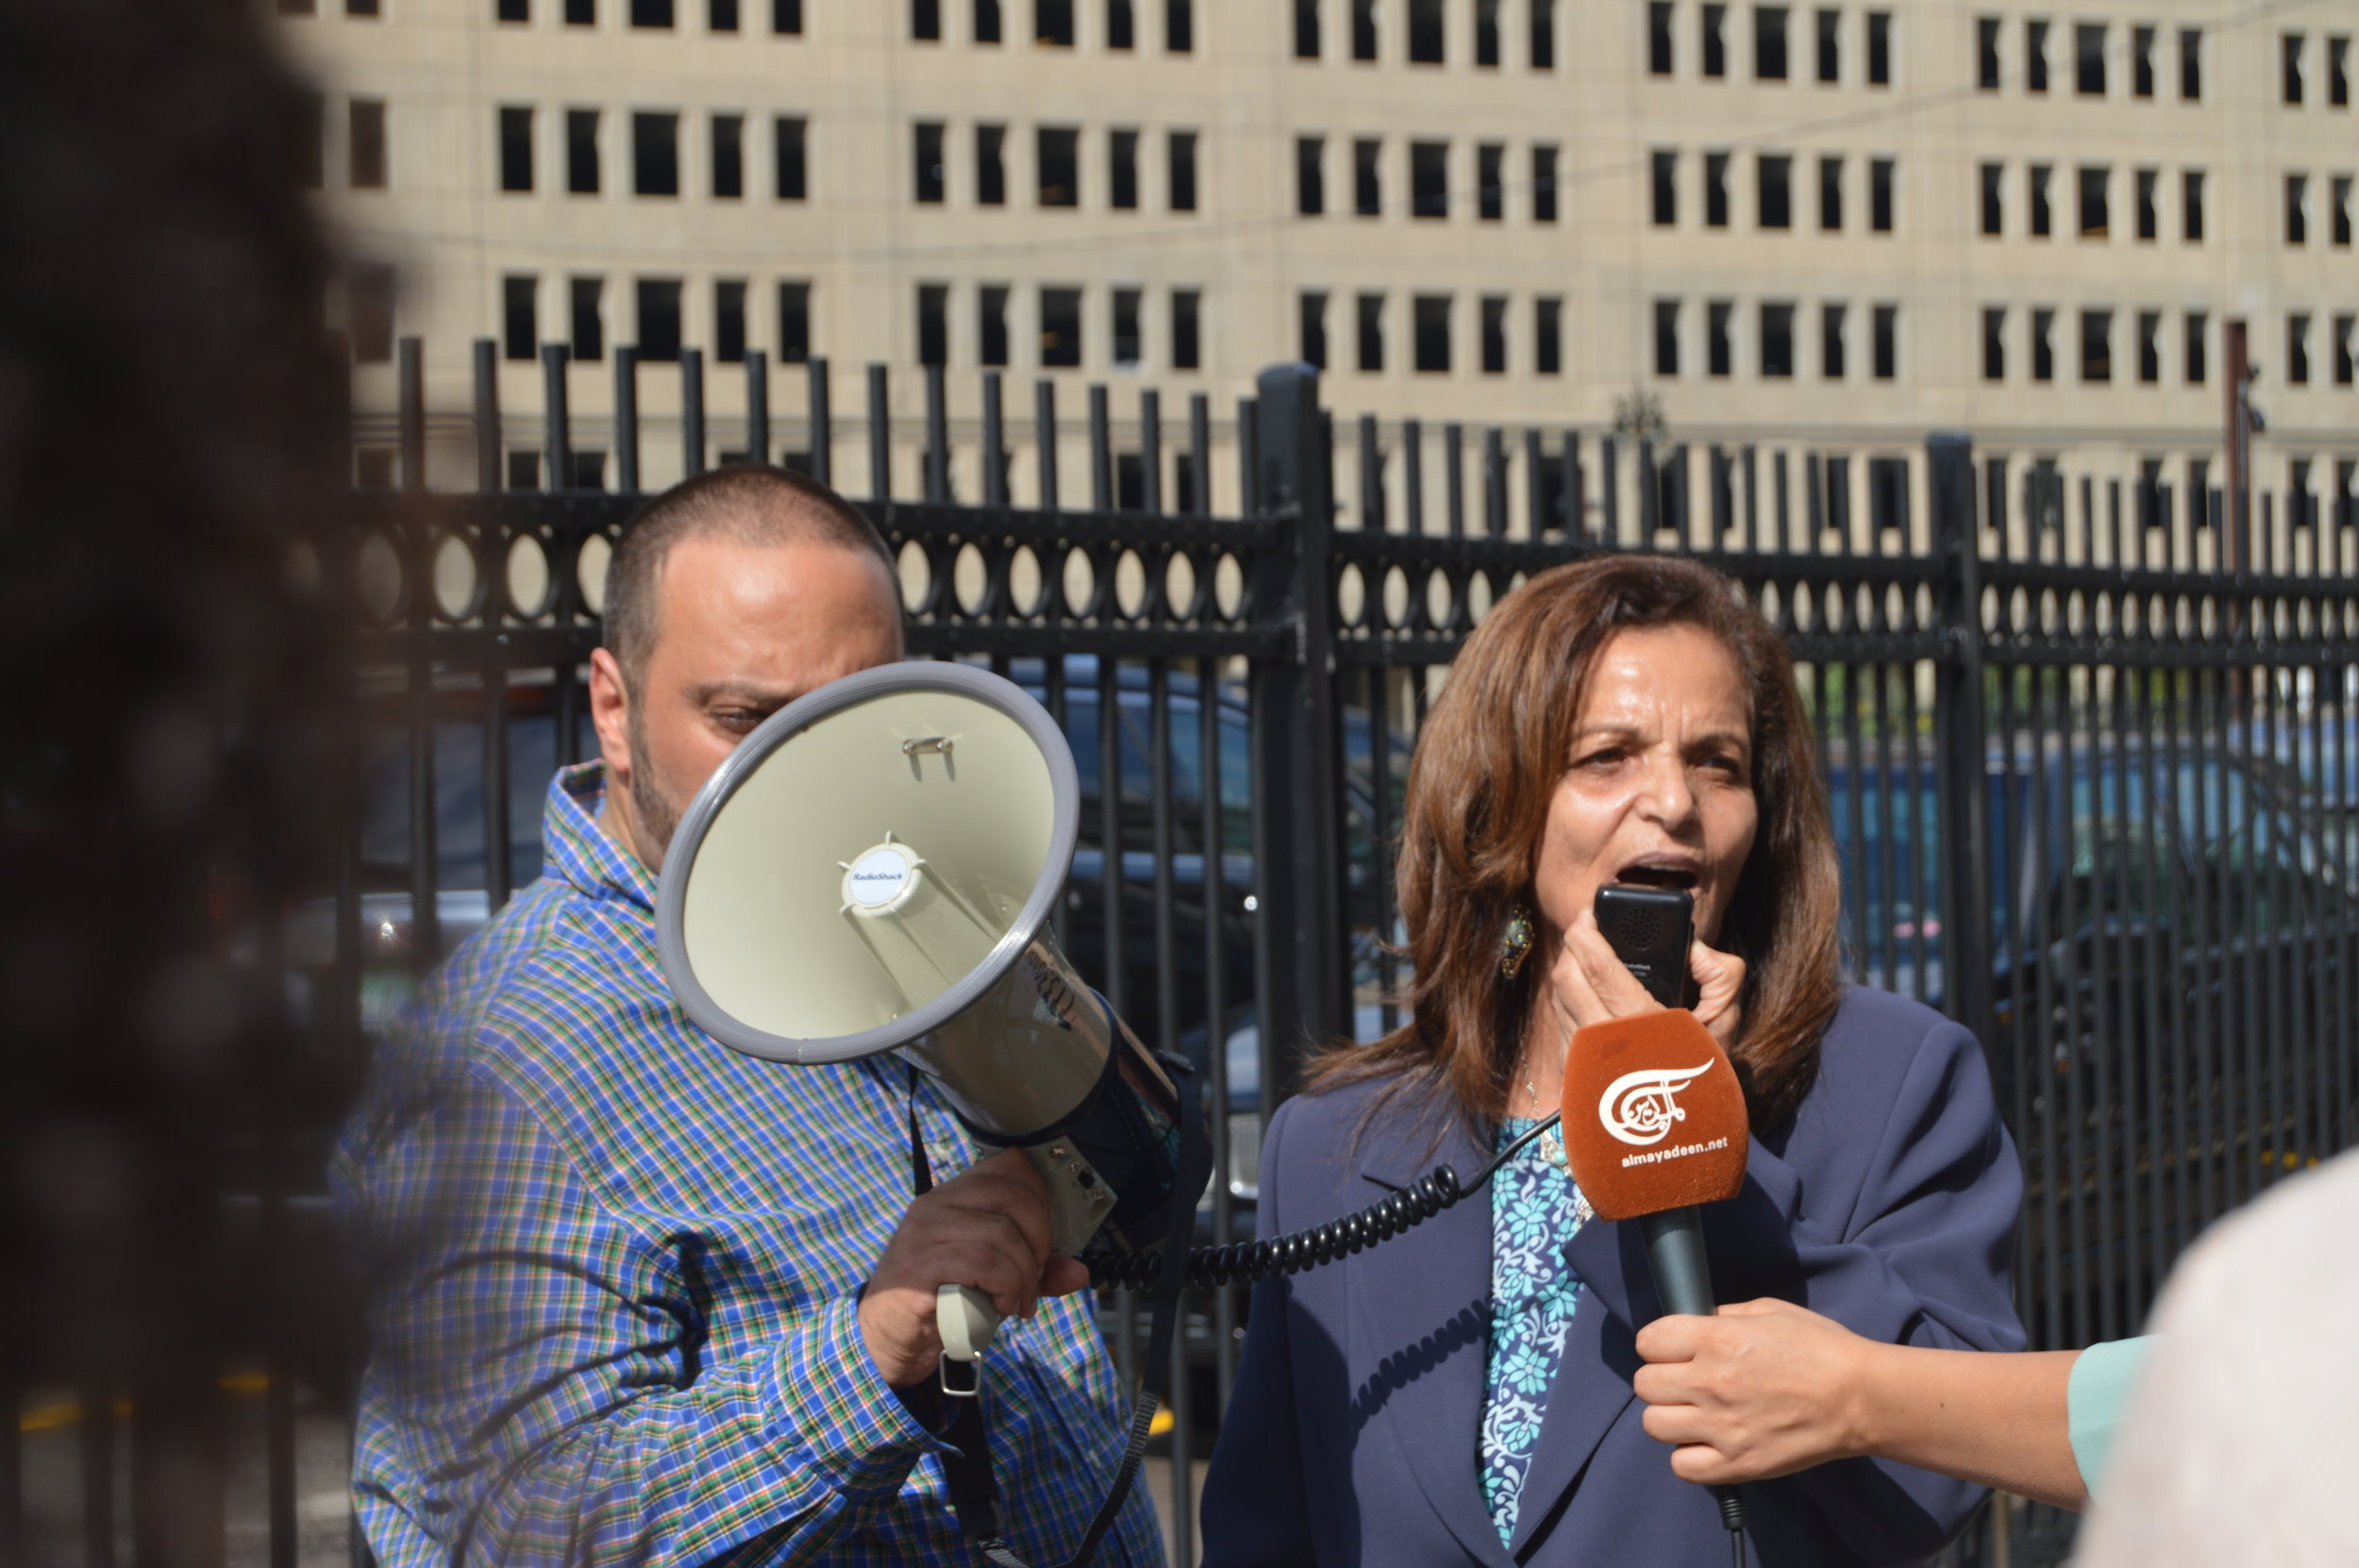 Rasmea Odeh addressed her supporters and journalist across the street from the Theodore Levin United States Courthouse in Detroit on Sept. 2.